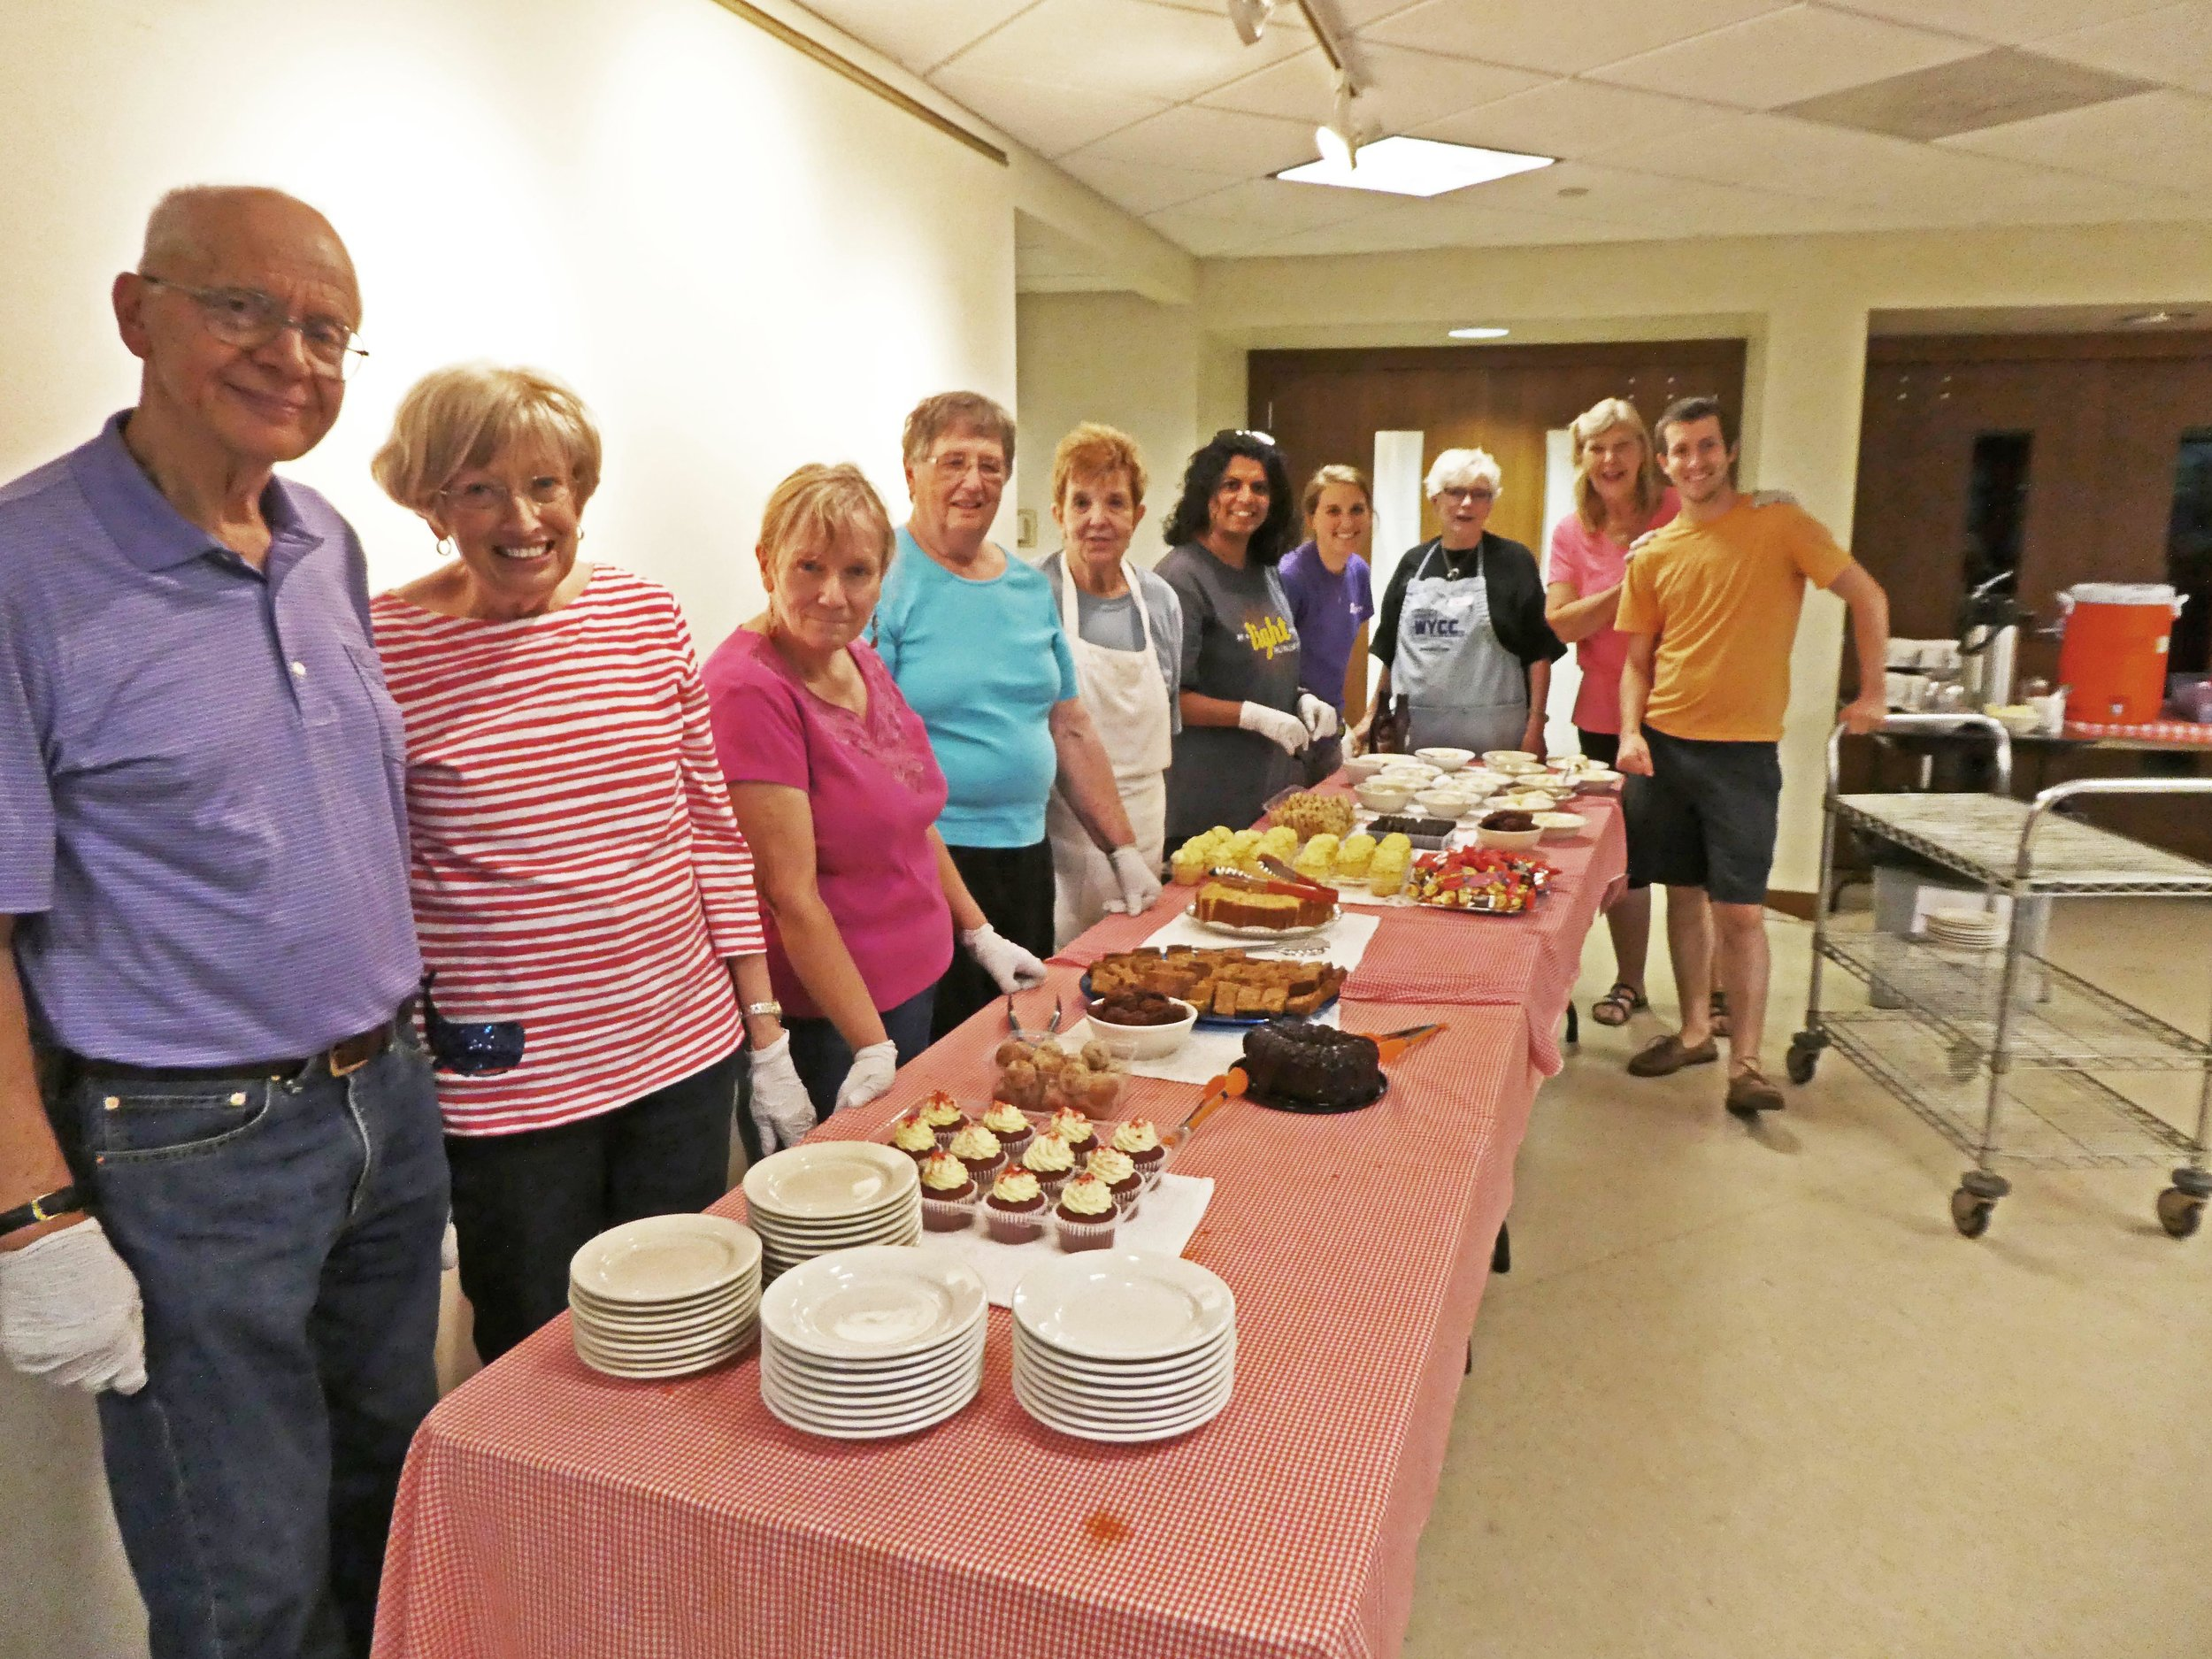 P1010411 Jul 12th PADS Servers 4 congregations  copy 2.jpg